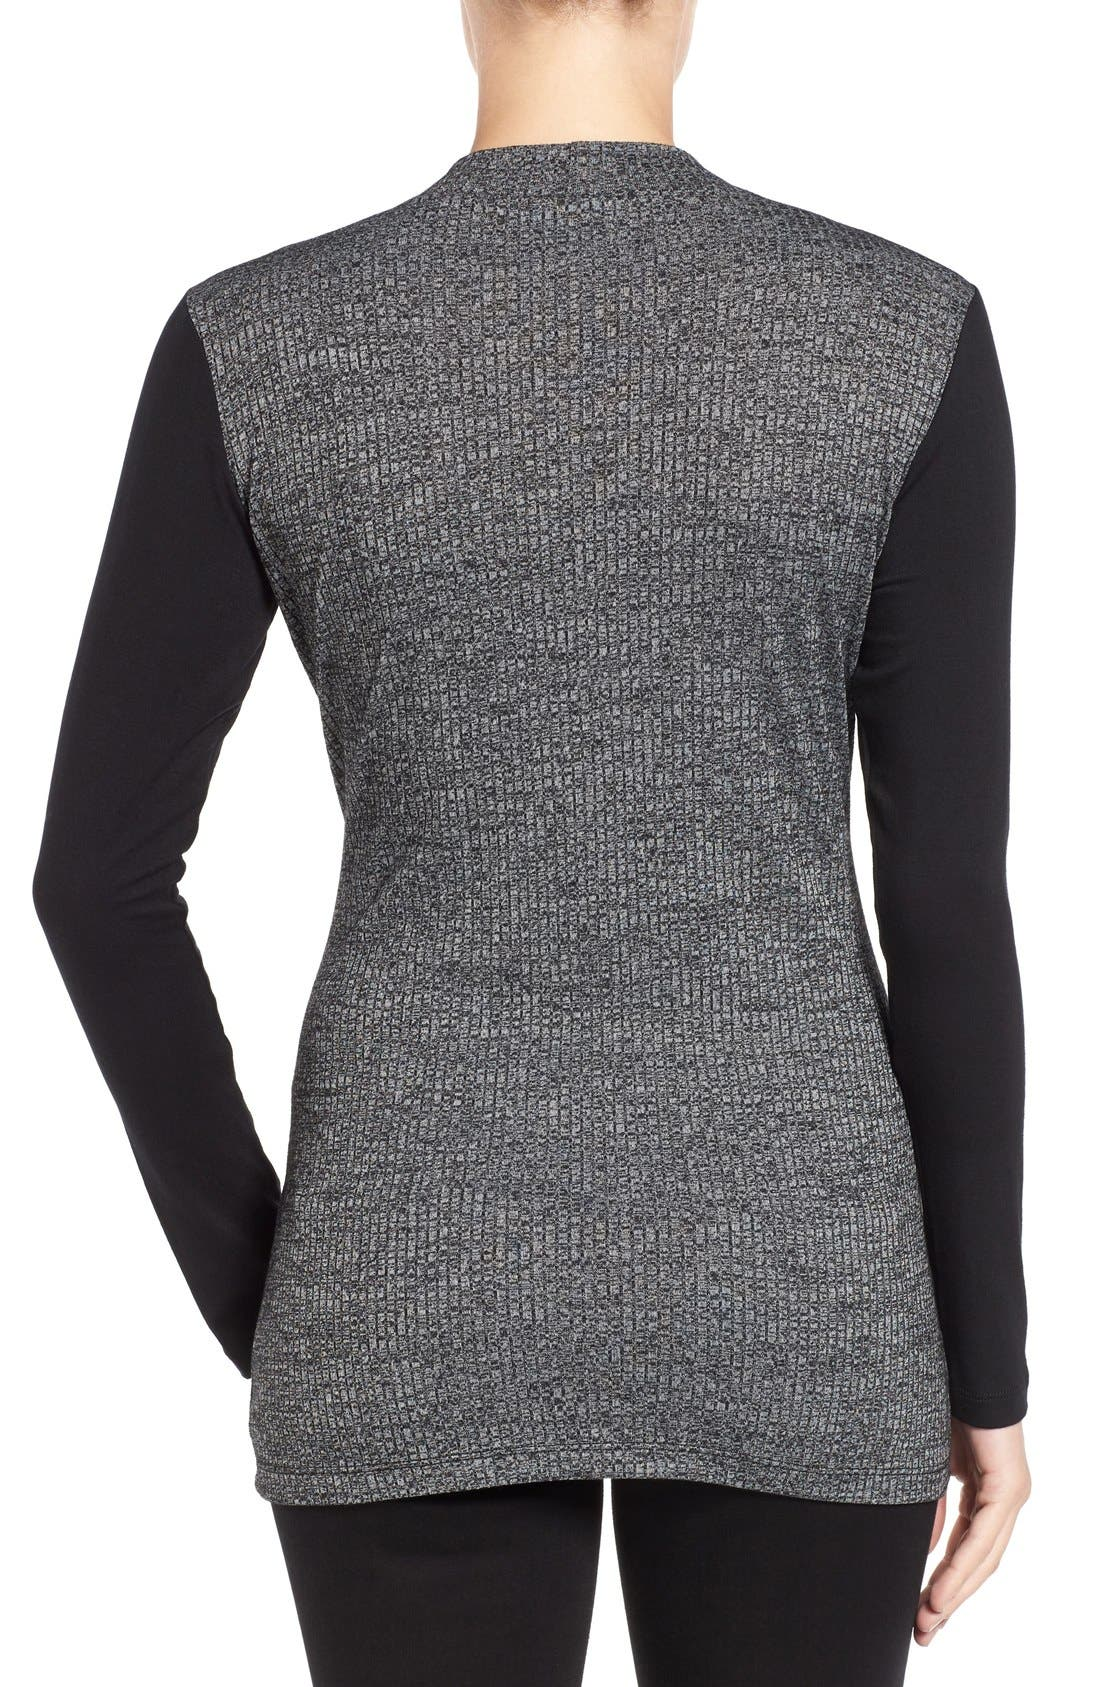 'Brie' Colorblock Maternity/Nursing Sweater,                             Alternate thumbnail 2, color,                             CHARCOAL/ BLACK